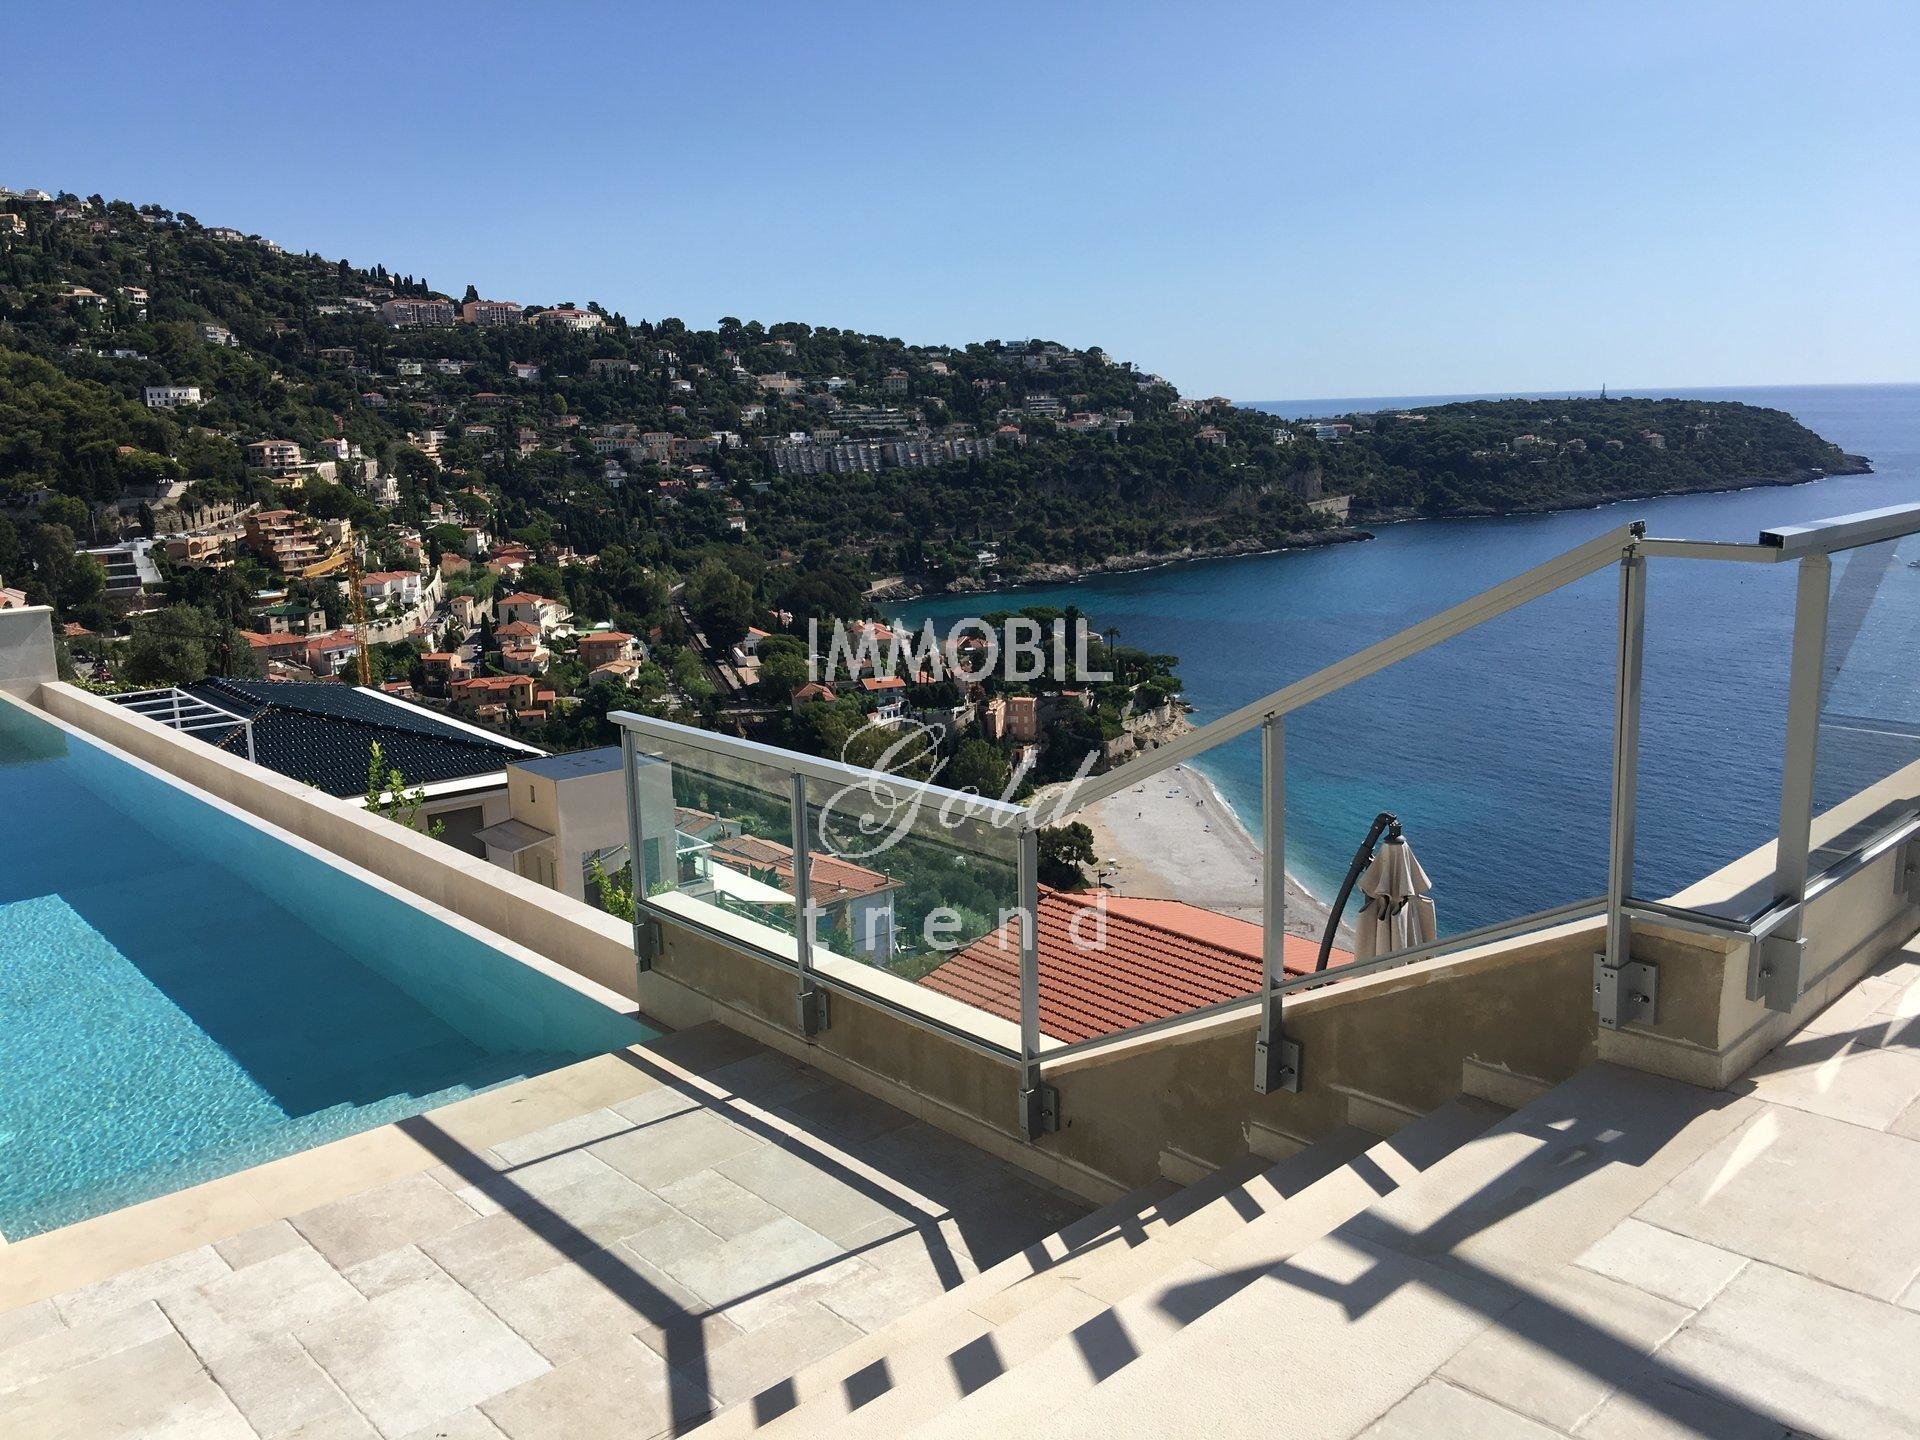 Real estate Roquebrune Cap Martin - For sale, villa composed of four apartments, with swimming pool and panoramic sea view, close to Monaco